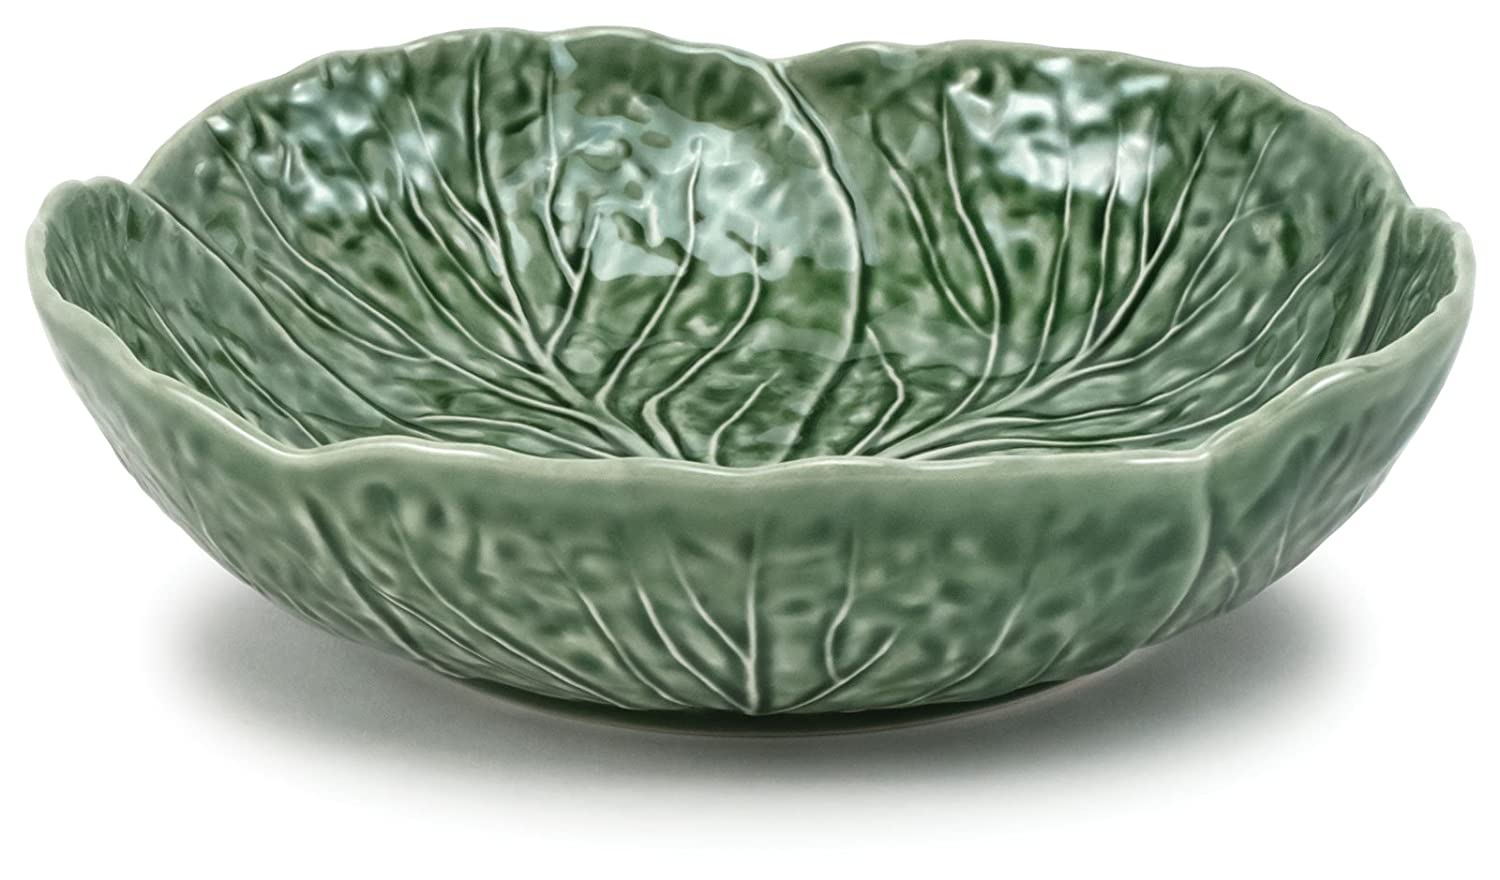 Christmas Tablescape Décor - Majolica Green Cabbage Leaf Pottery Medium Size Salad or Serving Bowl by Traders and Company